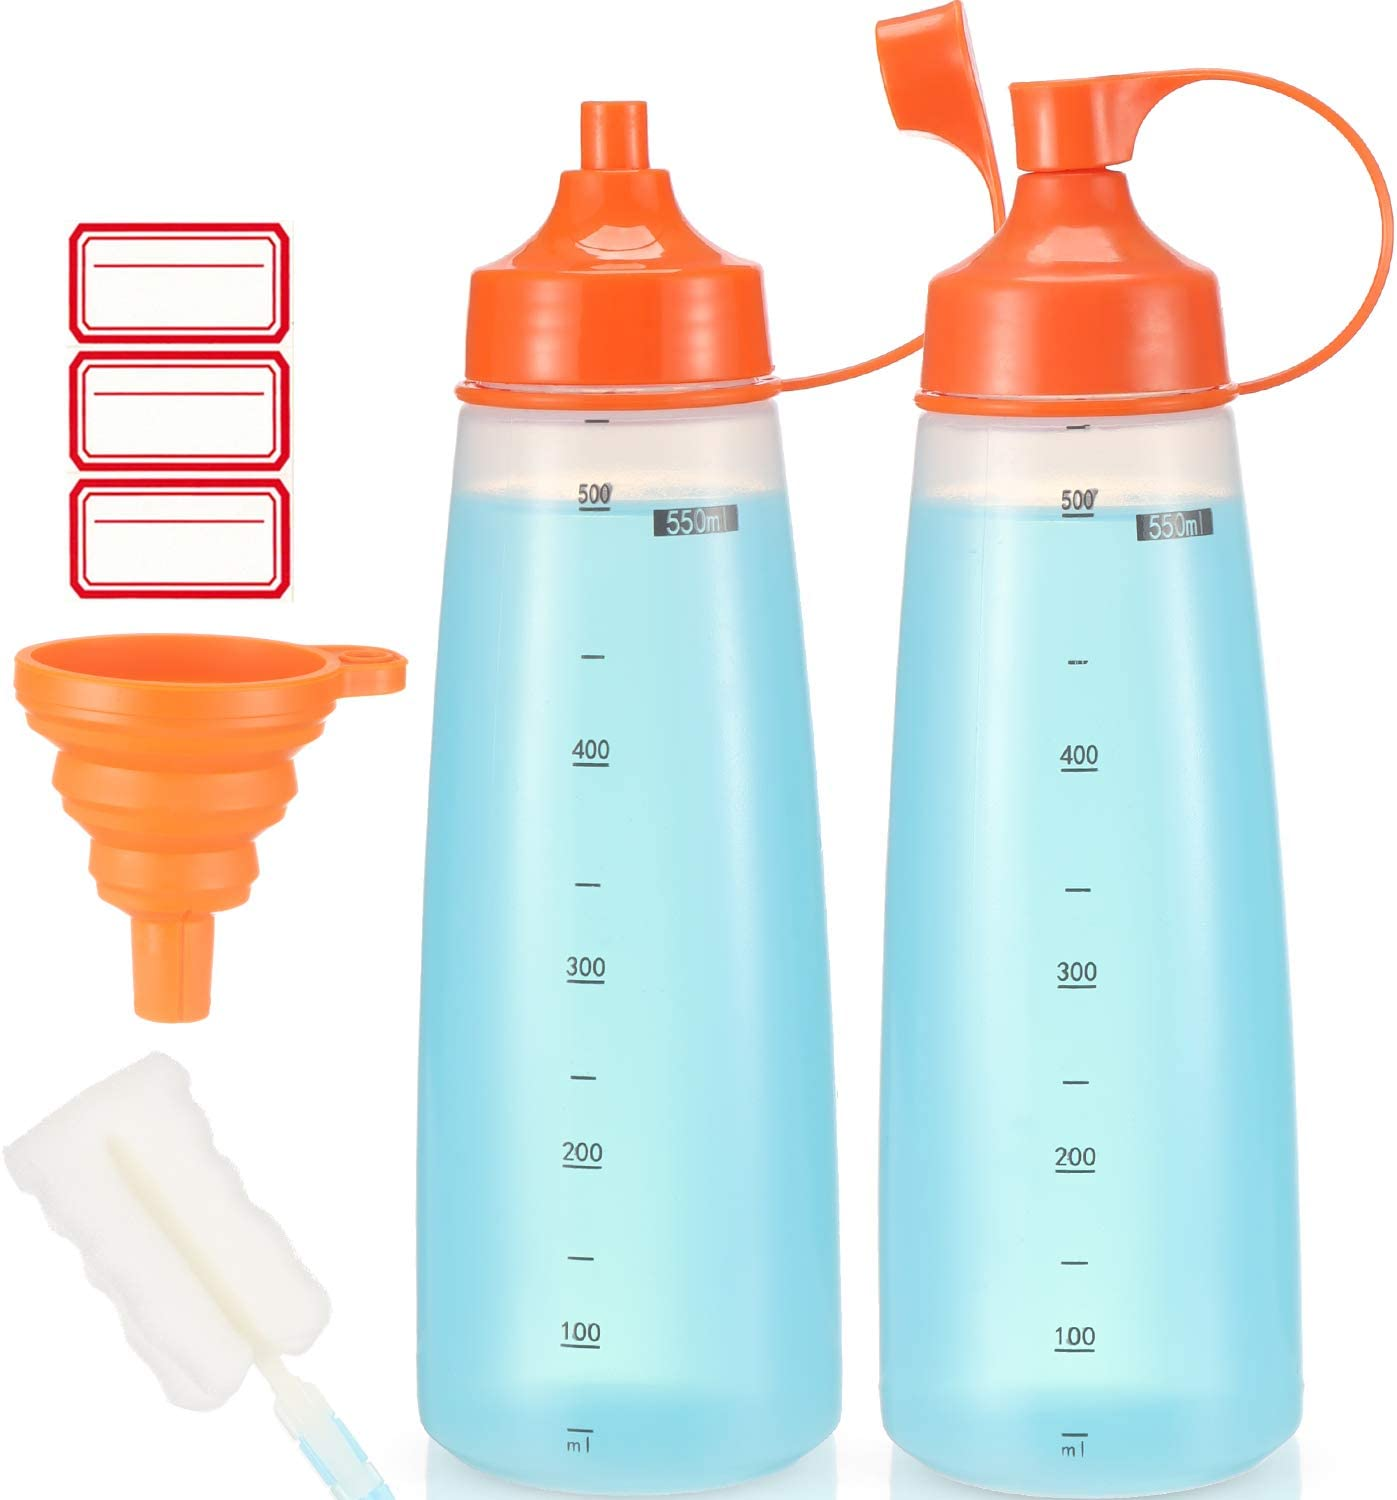 Condiment Squeeze Bottle Wide Mouth, Ondiomn 2 Pack 550ml Empty Reusable Squeeze Bottles for Honey,Batter,Catsup,Onion,Resin,Baking,Expoxy,Relish, BPA Free-Food Grade